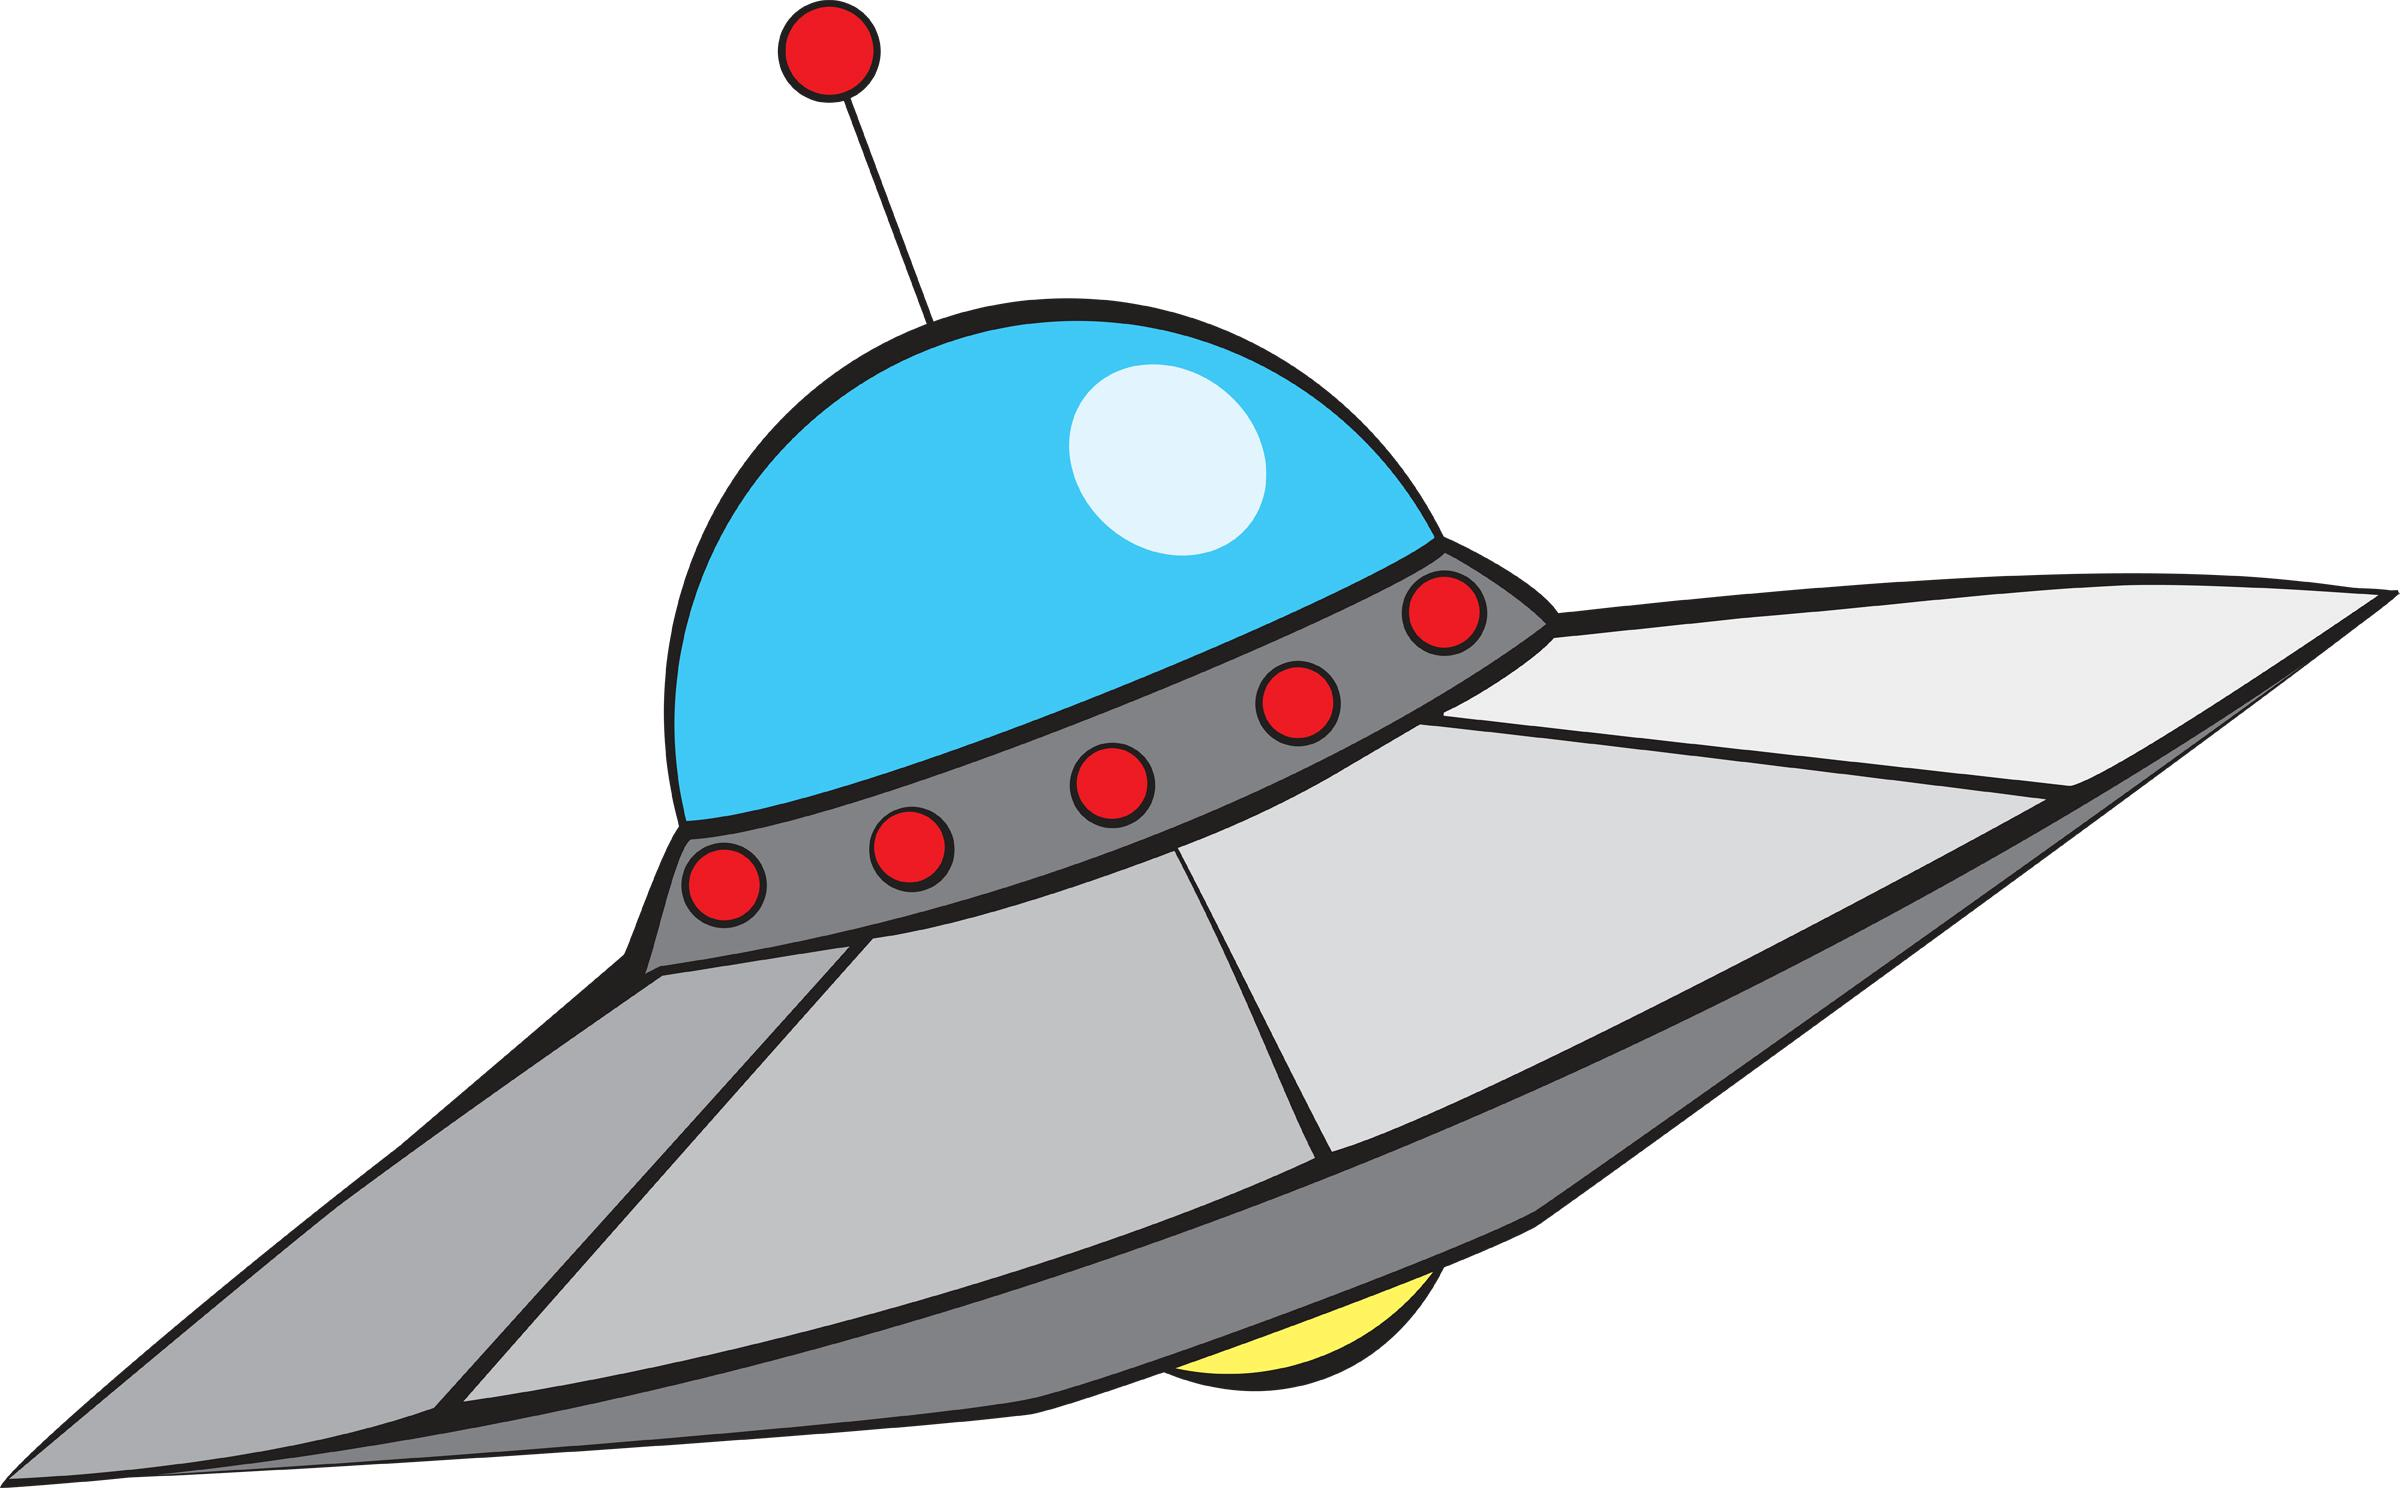 Cartoon spaceship clipart banner free library Radio occultation observations of the ionosphere of Mars banner free library